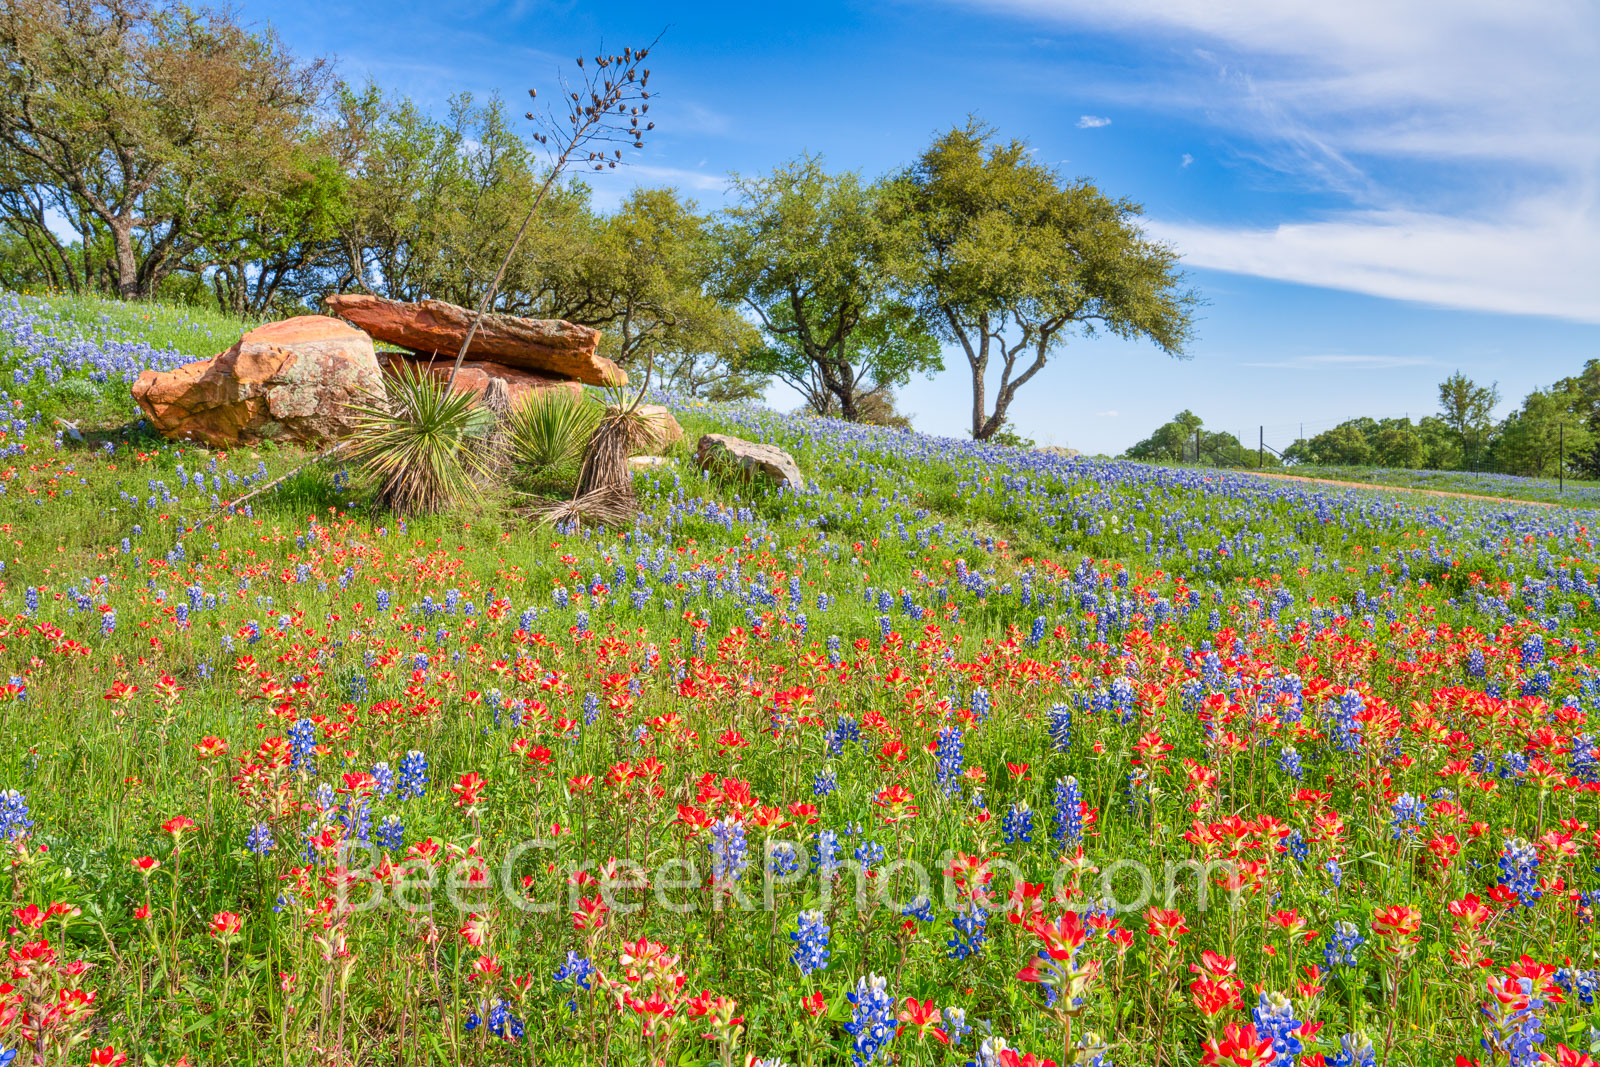 Rural Hill Country Wildflowers - We came back to this location several times to captured Texas wildflowers as it was one of the...